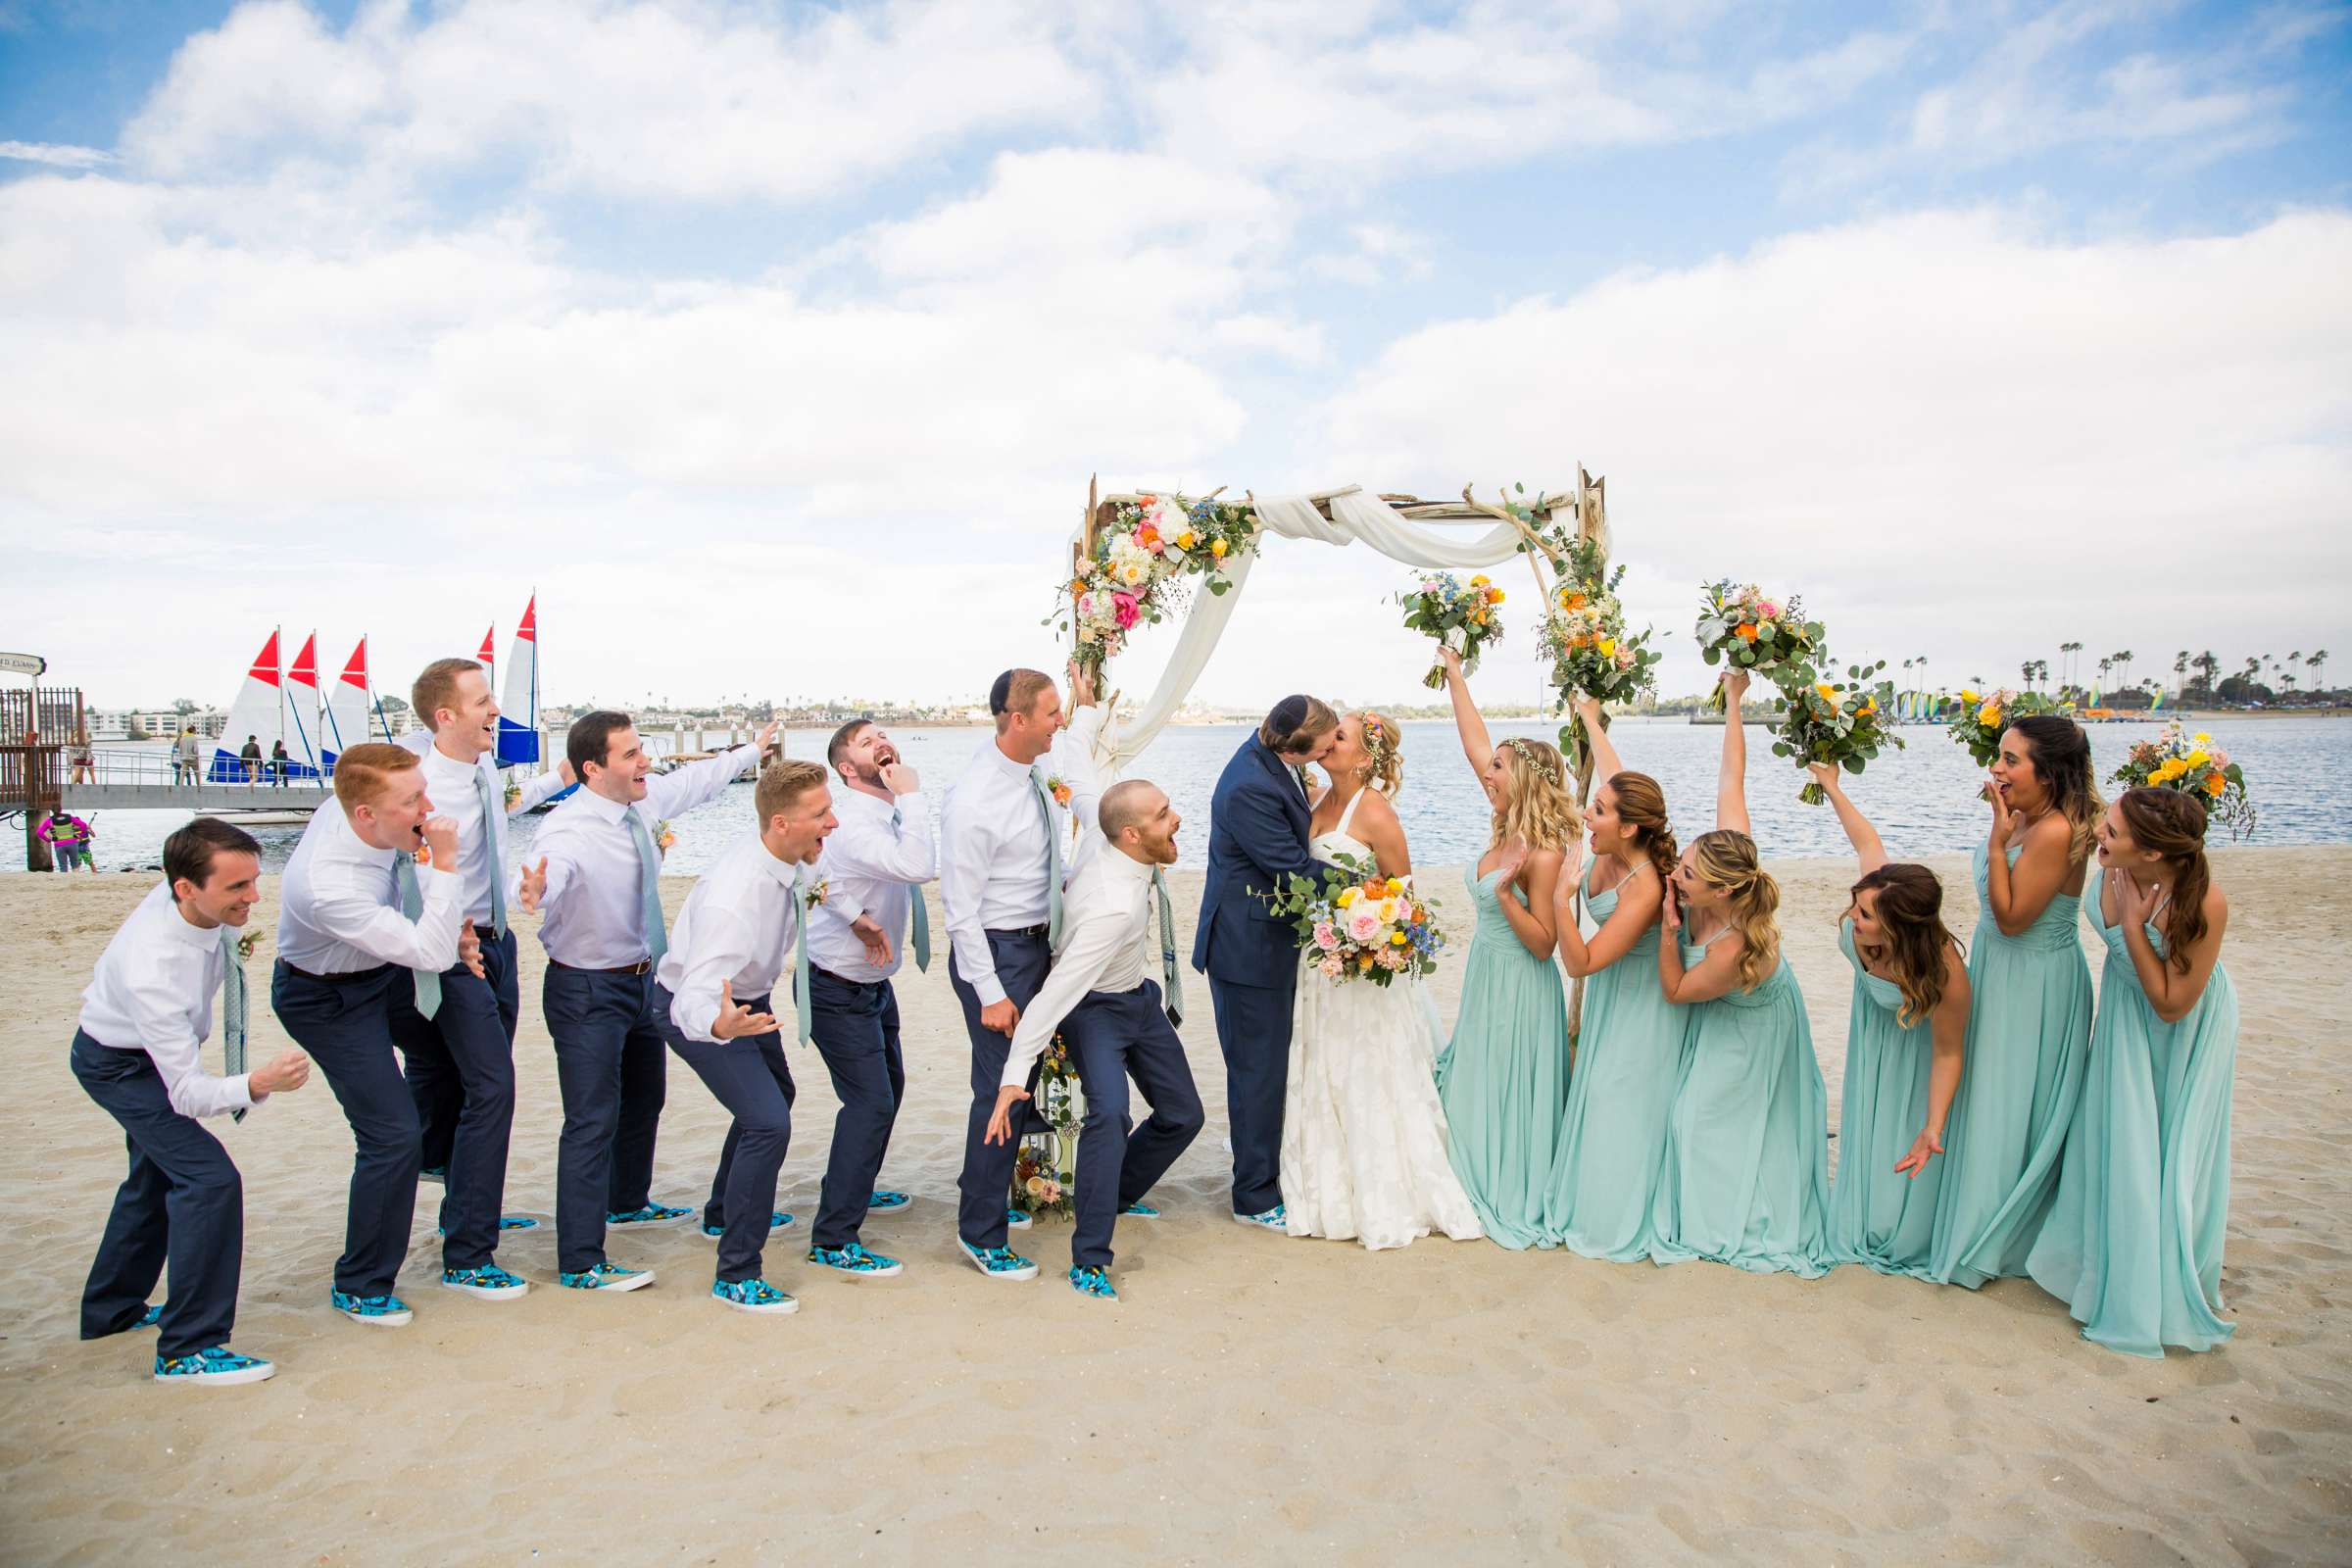 Catamaran Resort Wedding coordinated by Lavish Weddings, Brittany and David Wedding Photo #91 by True Photography